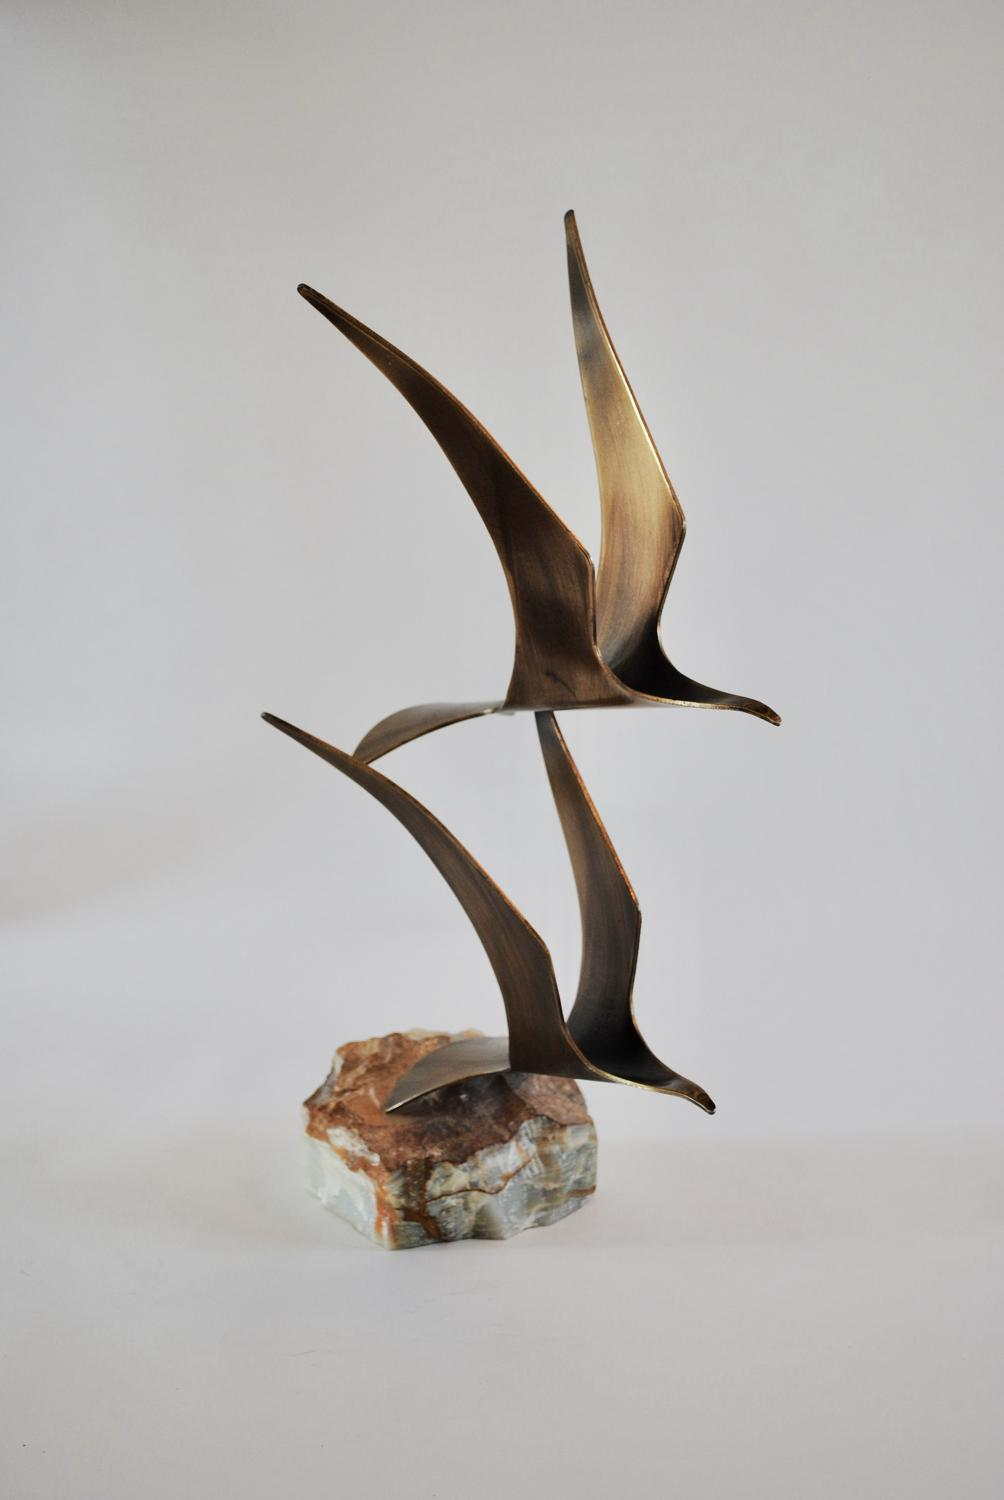 Sculpture of seagulls in flight